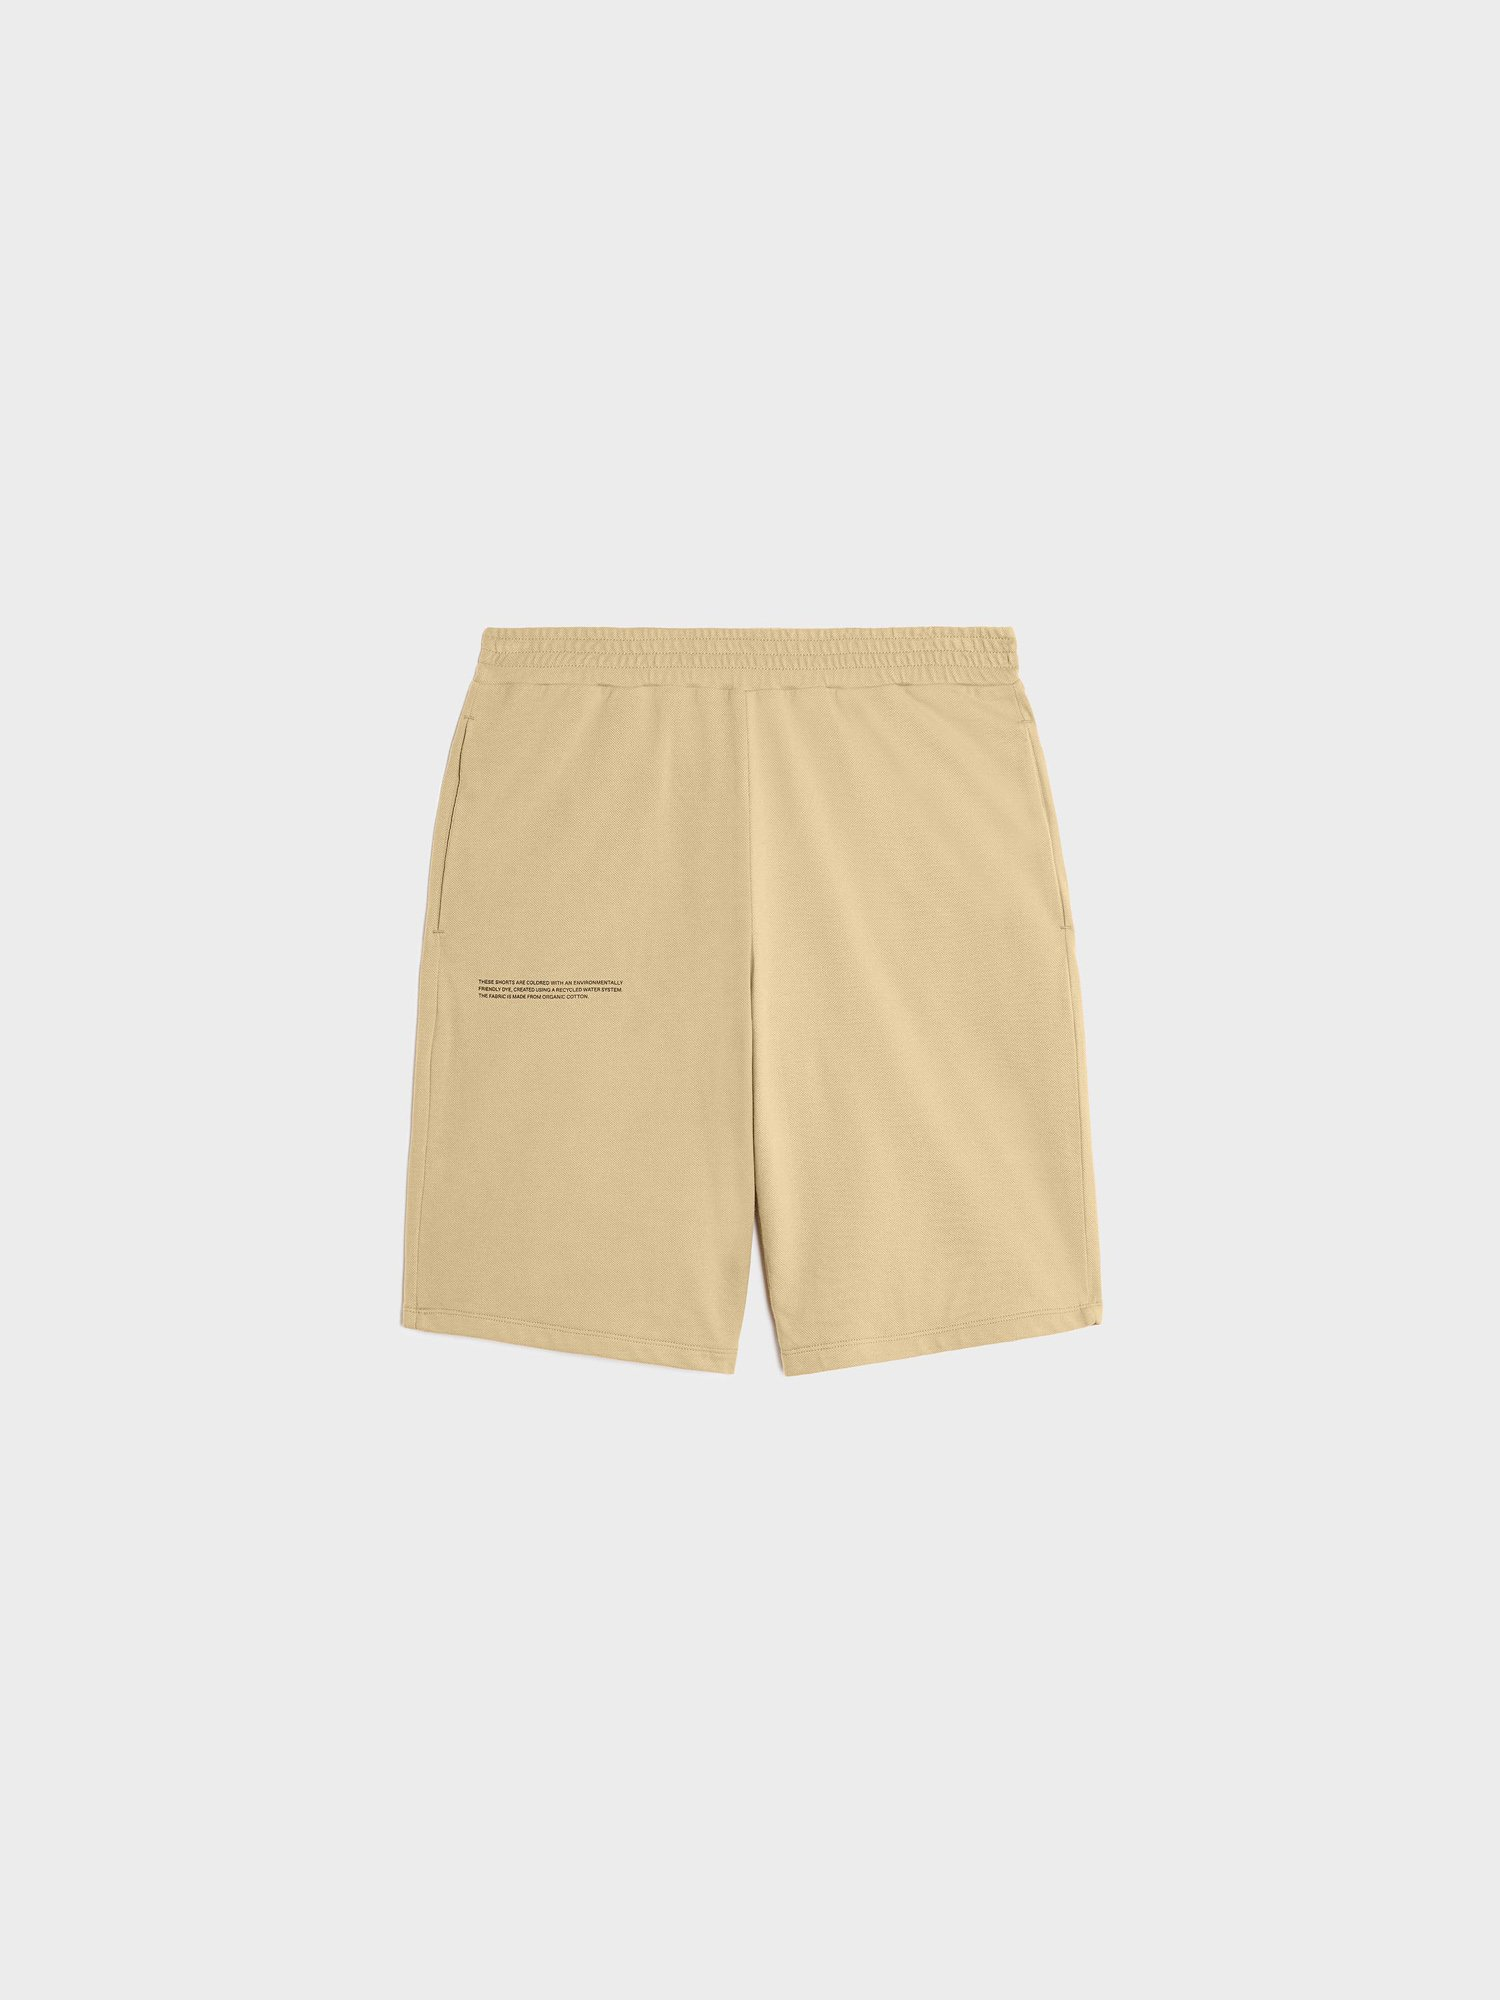 Organic cotton pique shorts